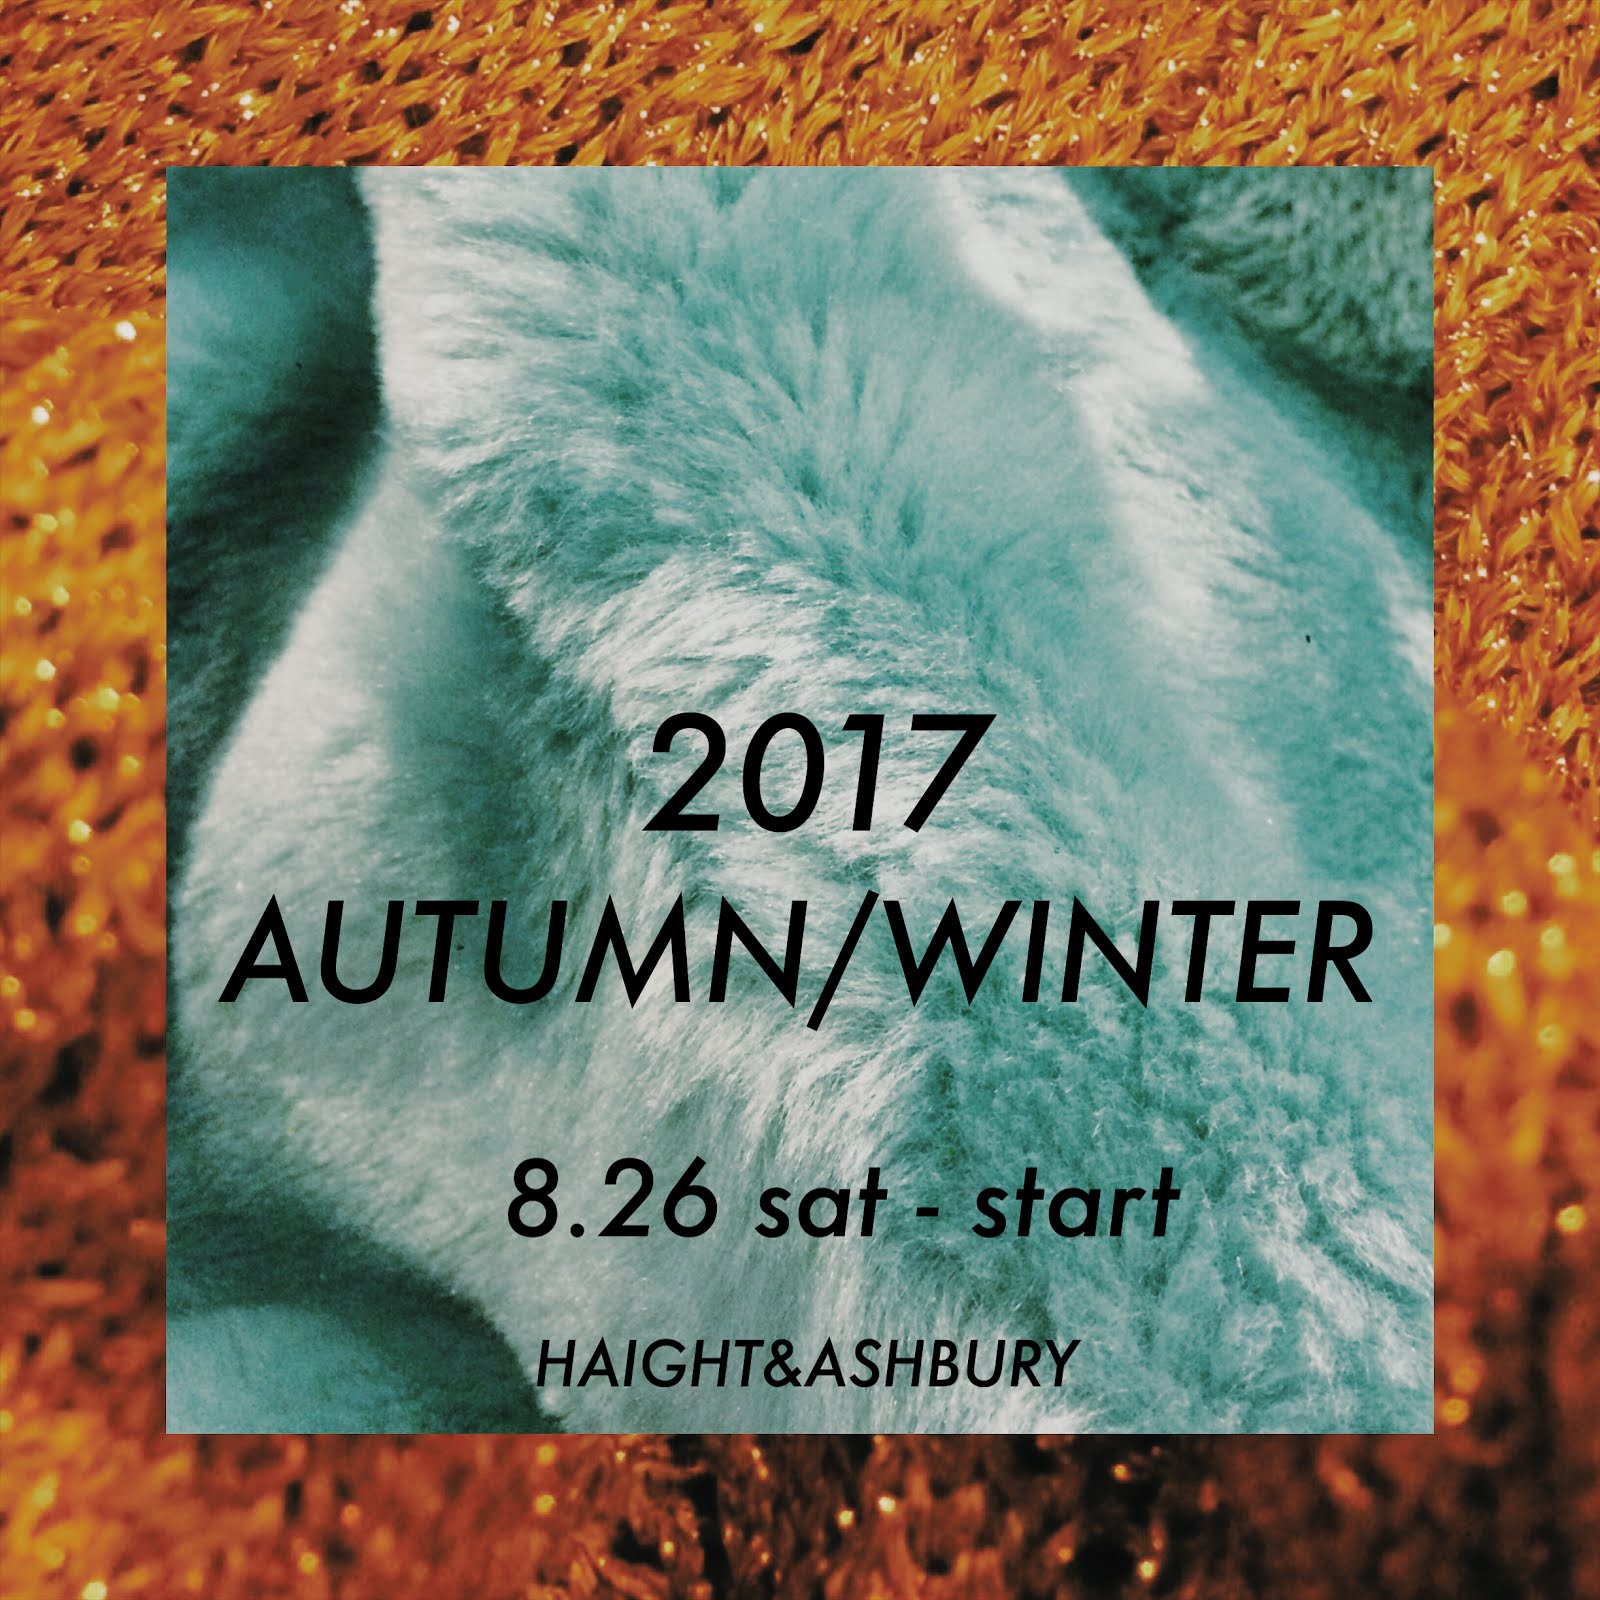 2017 AUTUMN/WINTER